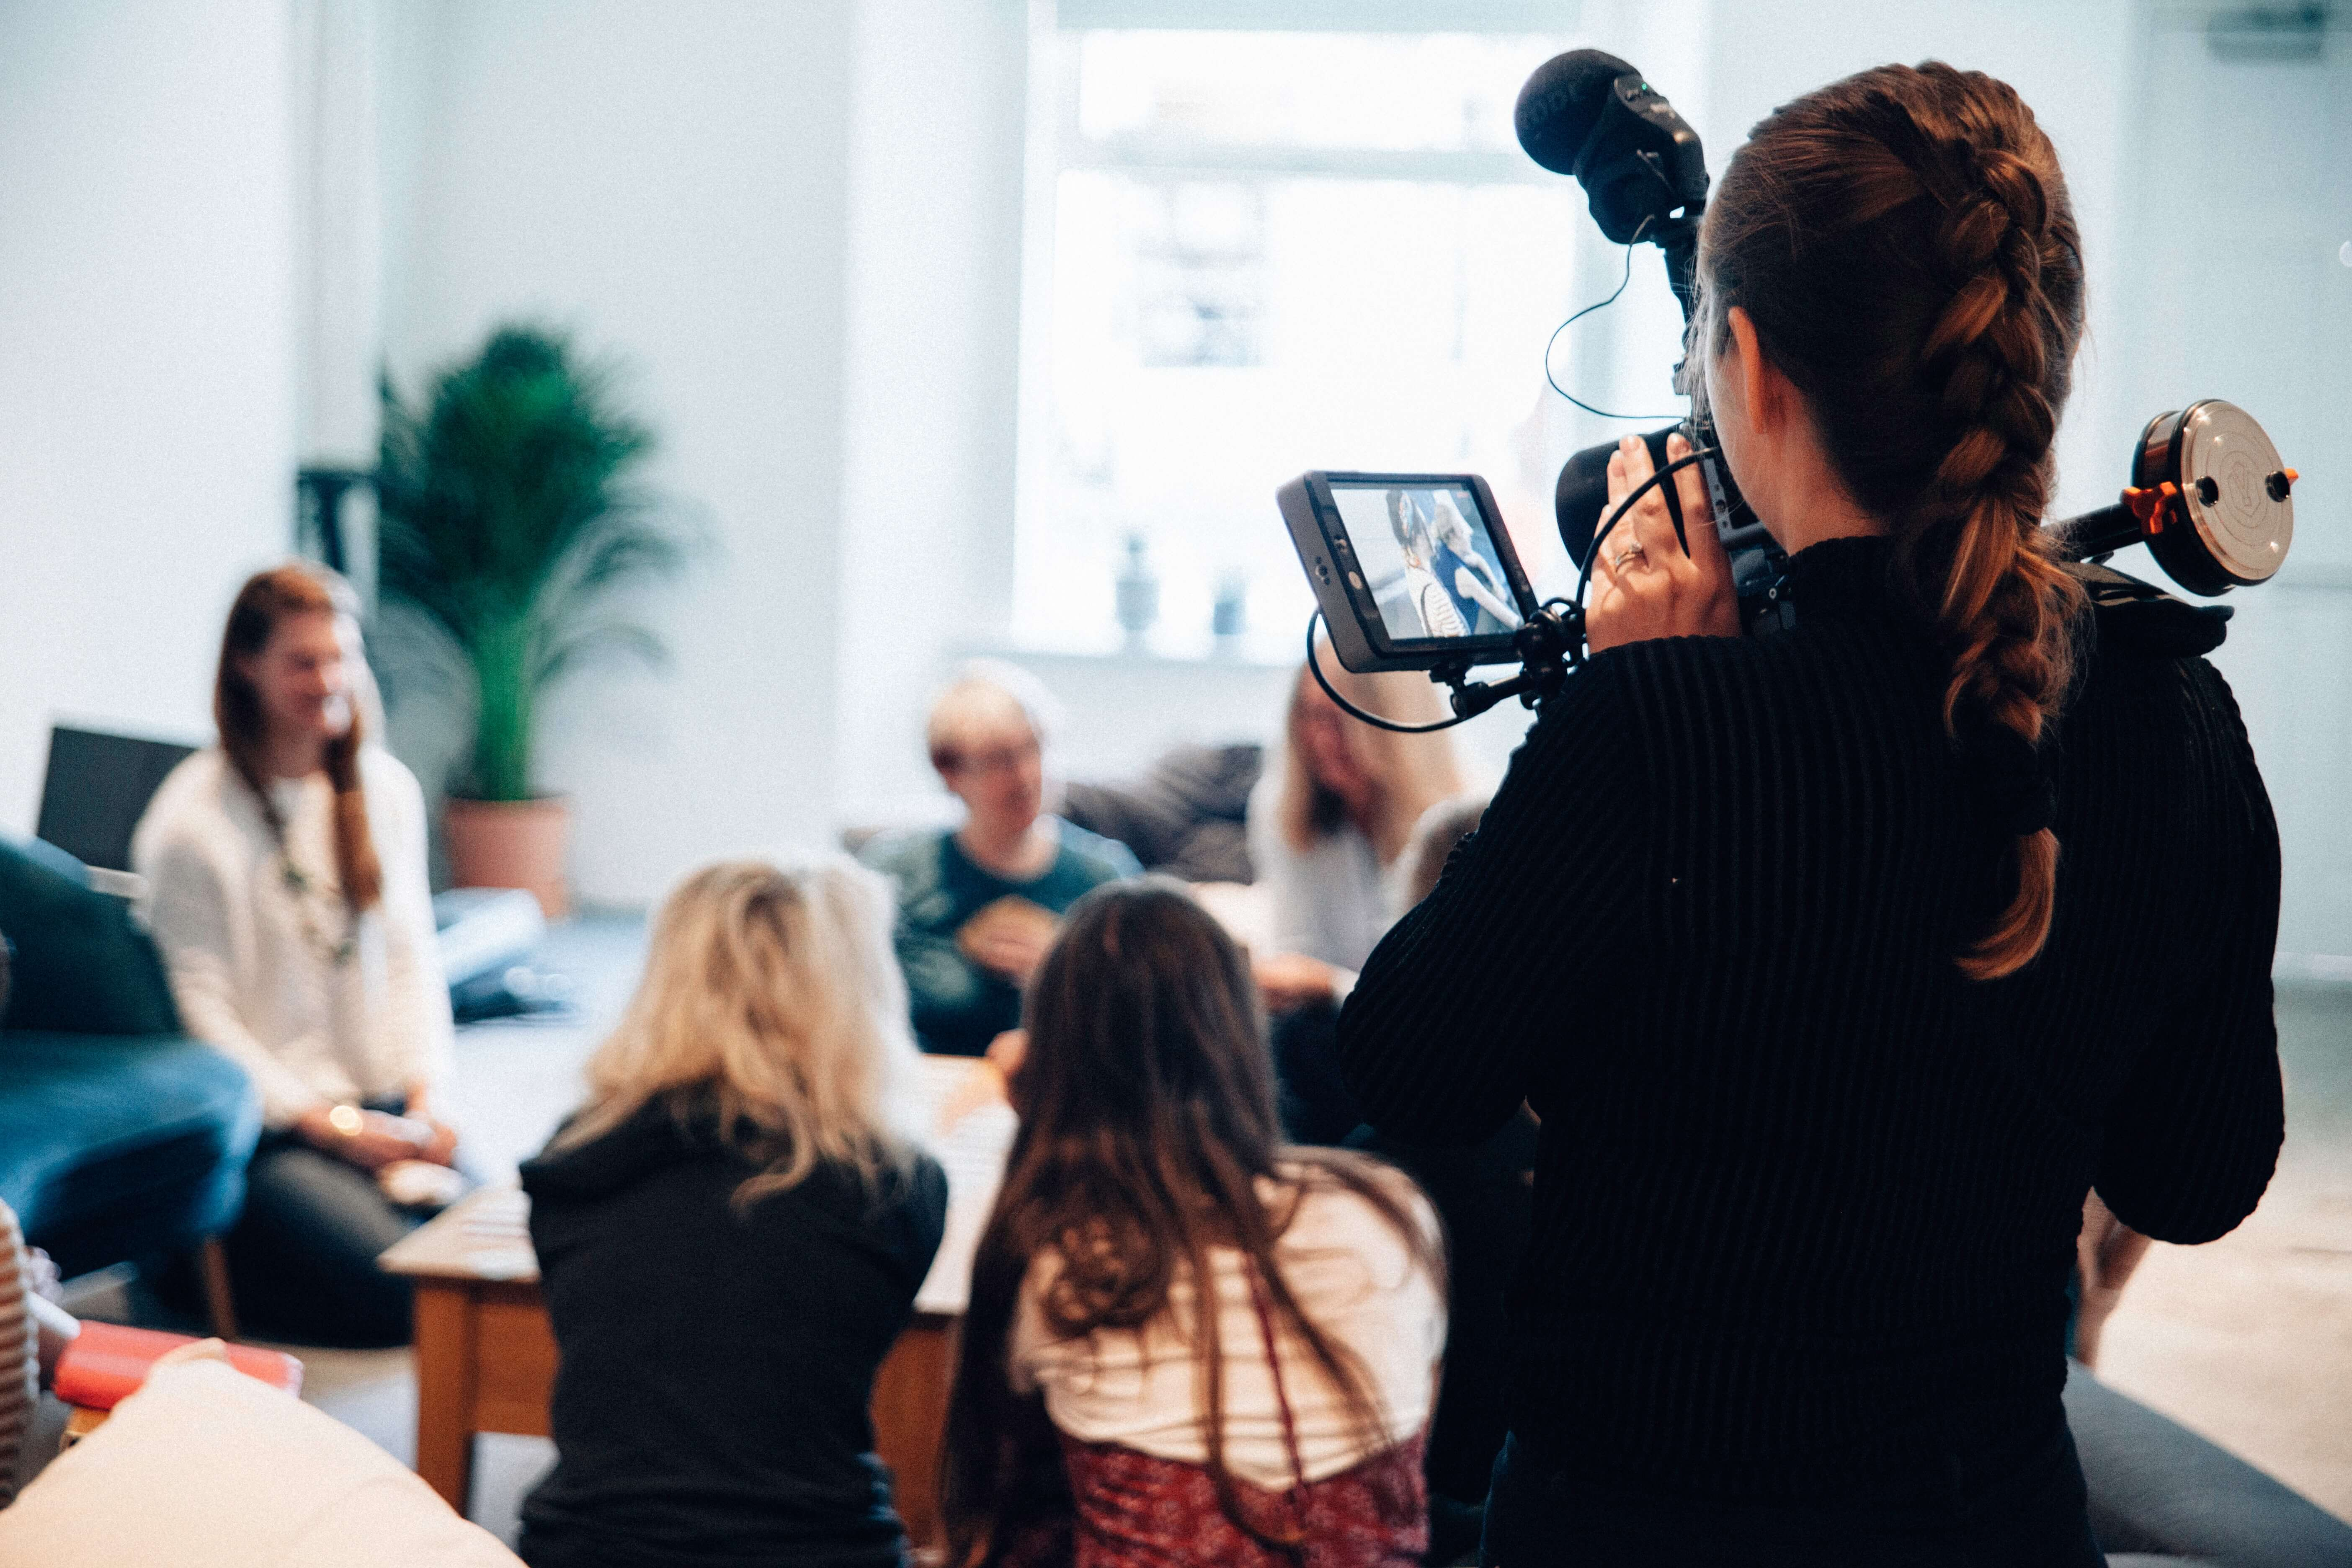 3 tips for engagement for your next live virtual event